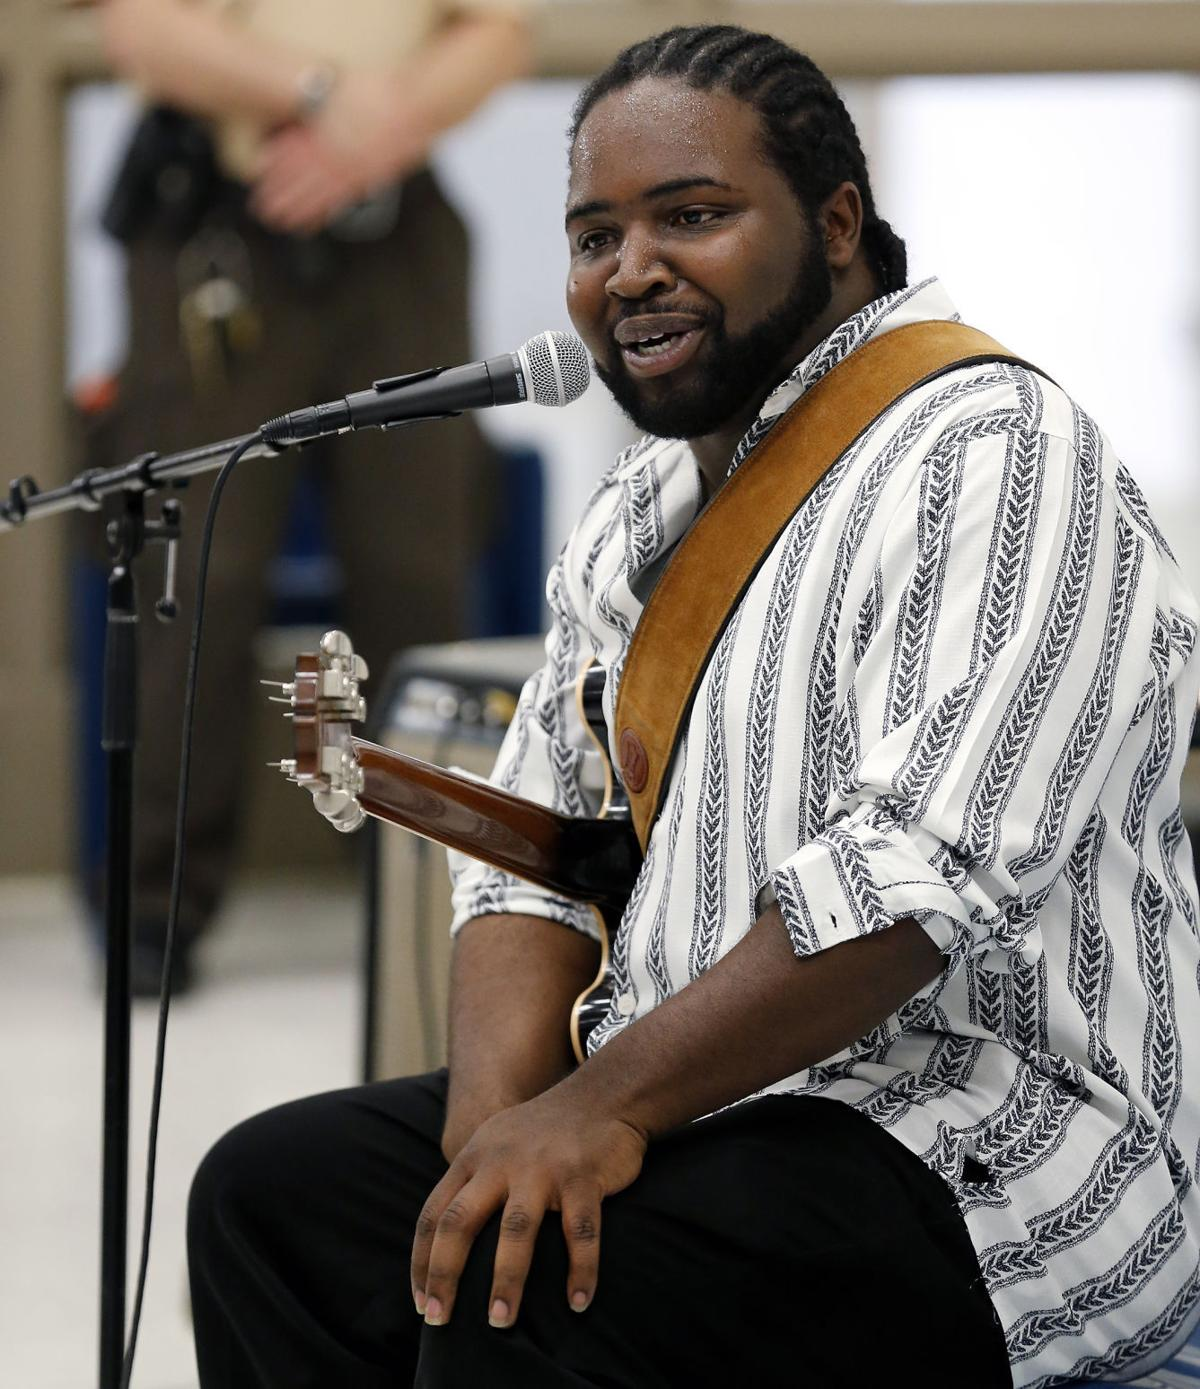 Musician Marquise Knox